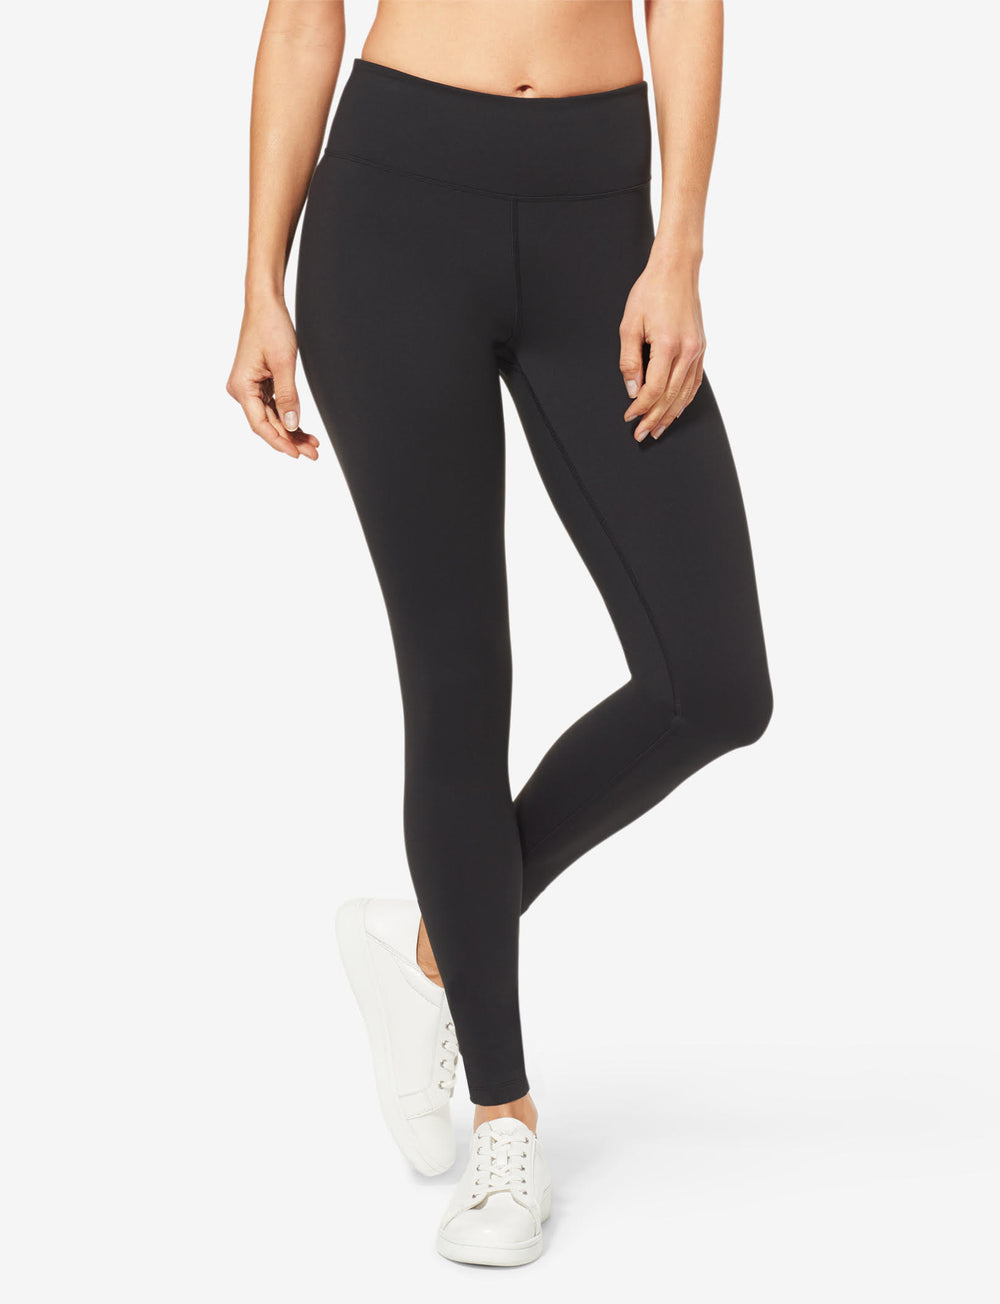 Women's Go Anywhere® Legging